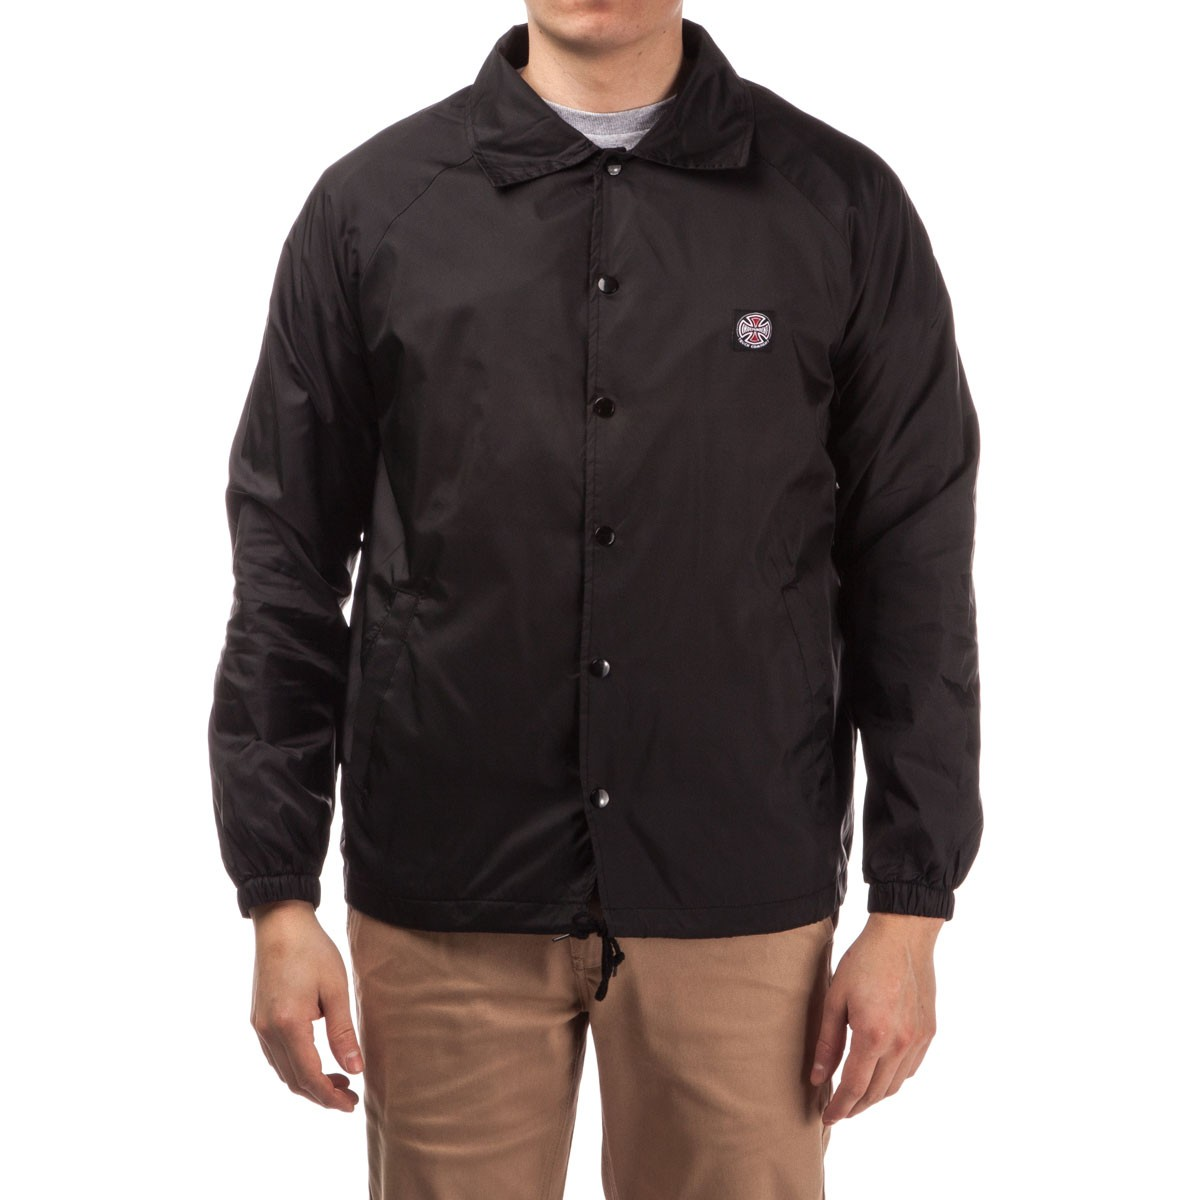 Subdue Coach Windbreaker Jacket - Black